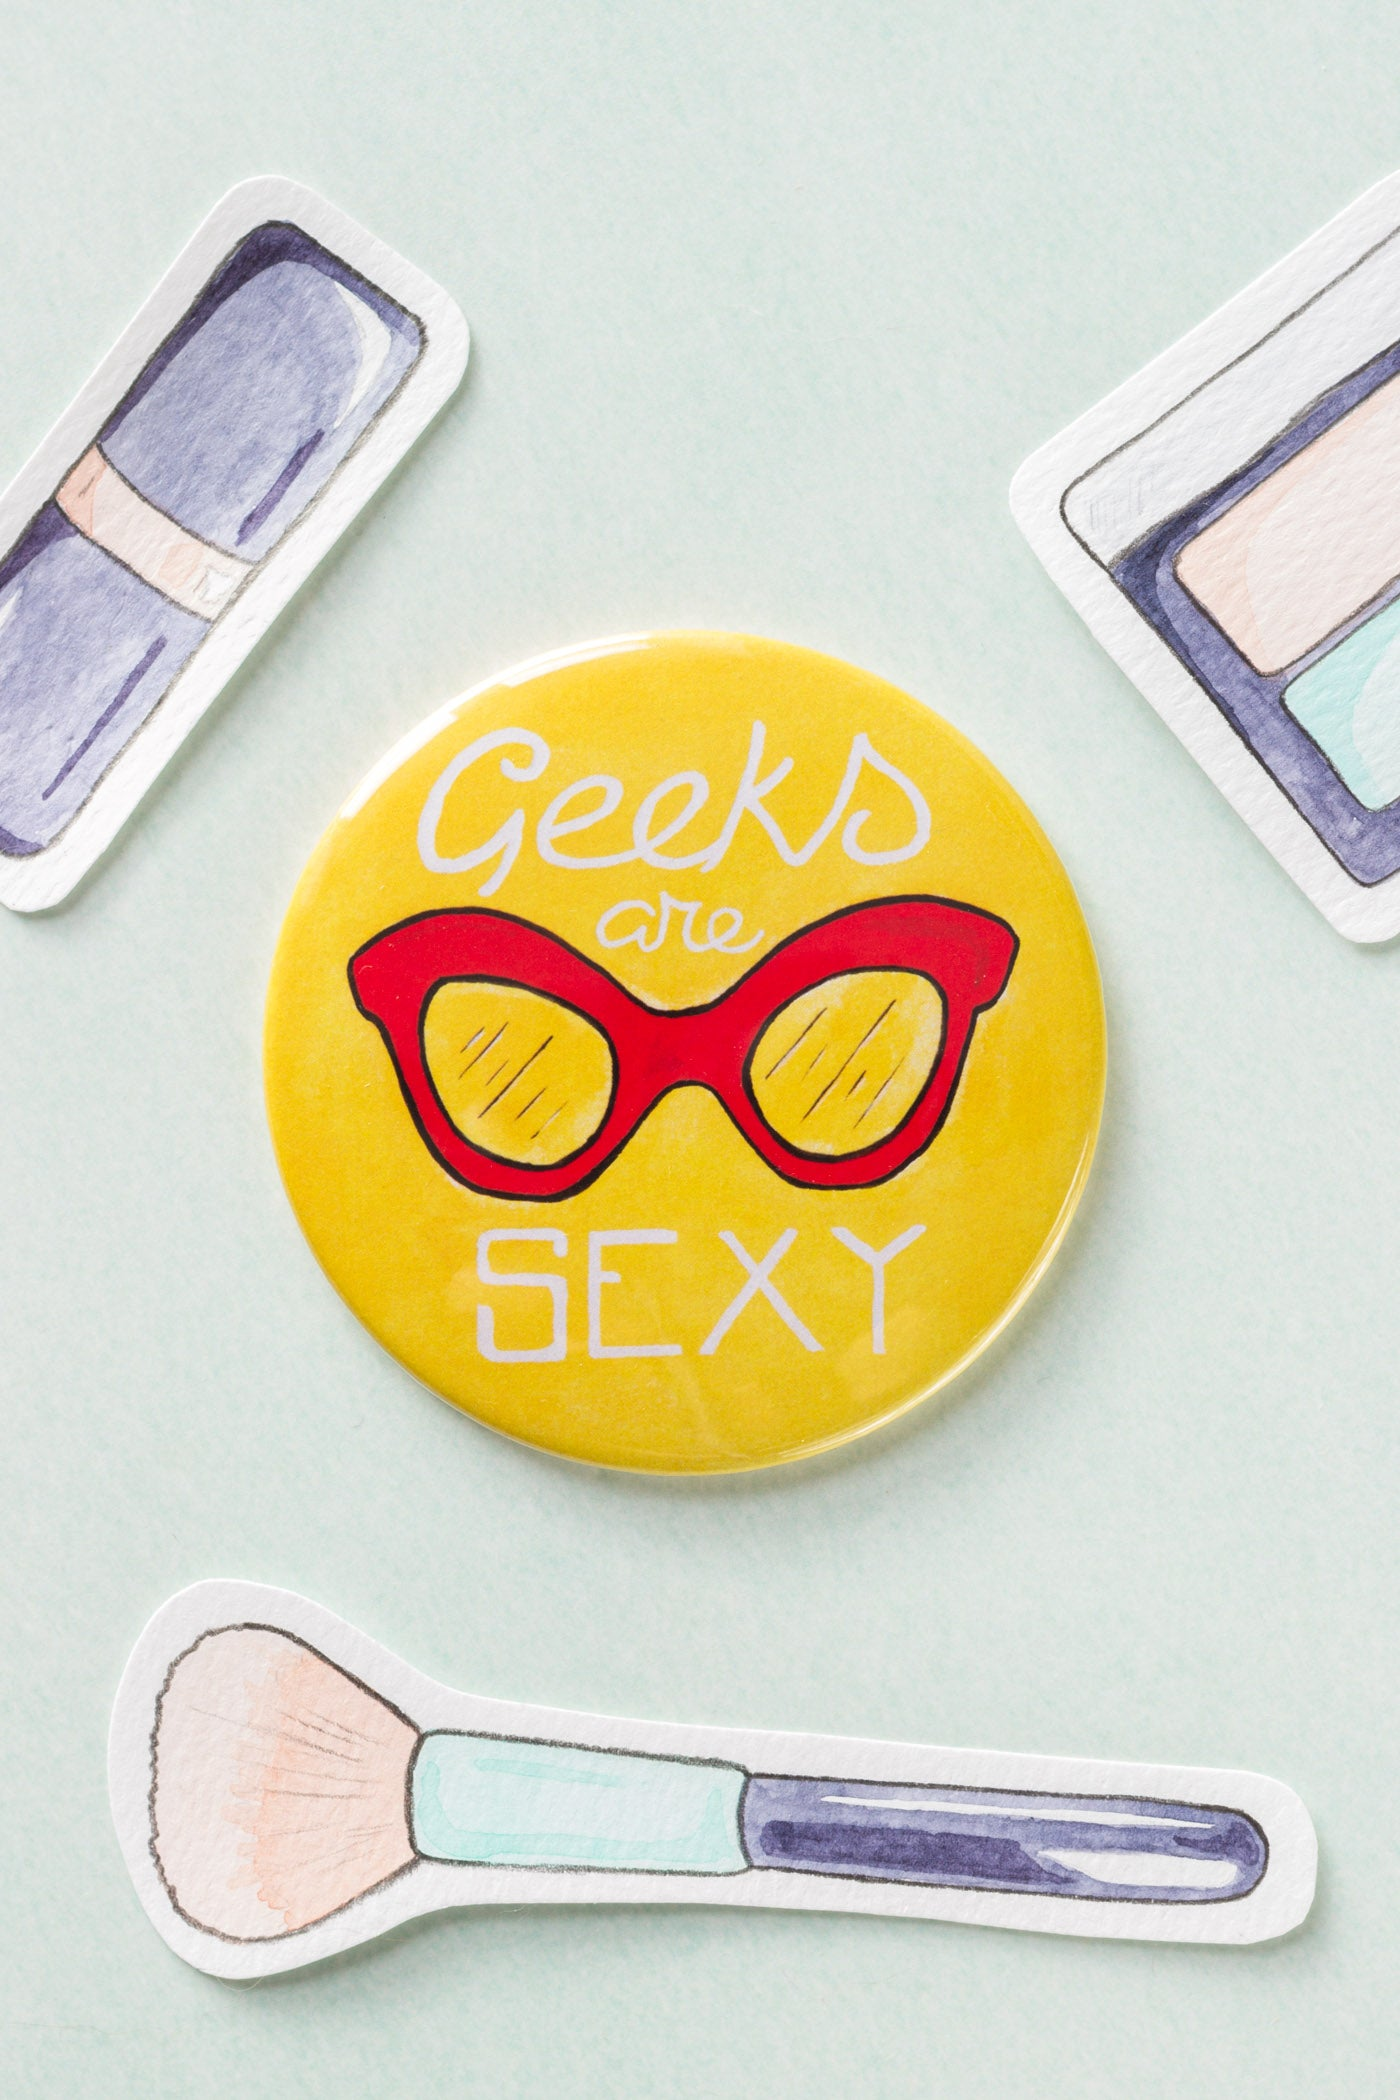 Geeks are Sexy Pocket Mirror